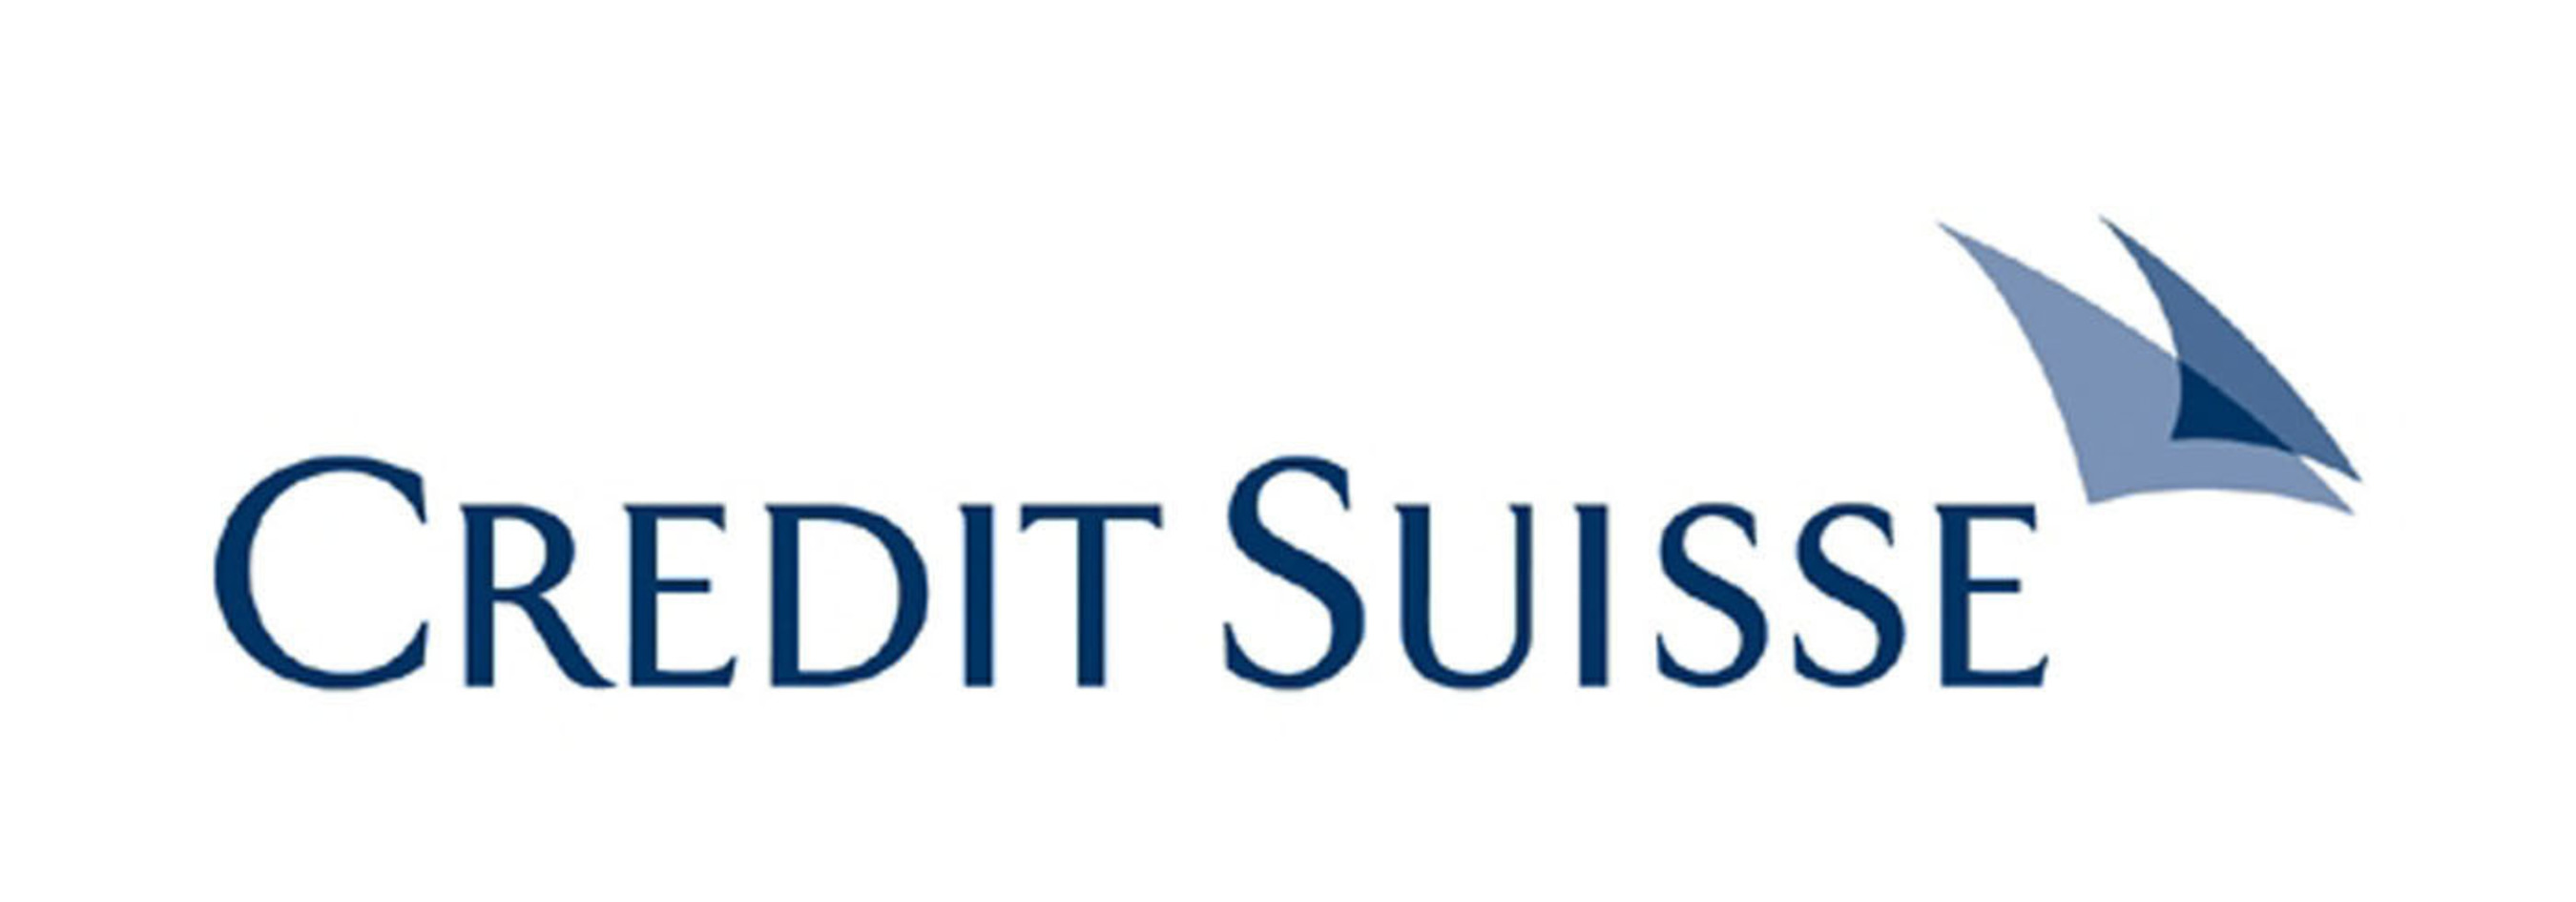 Wells Fargo and Credit Suisse U S  Private Banking announce